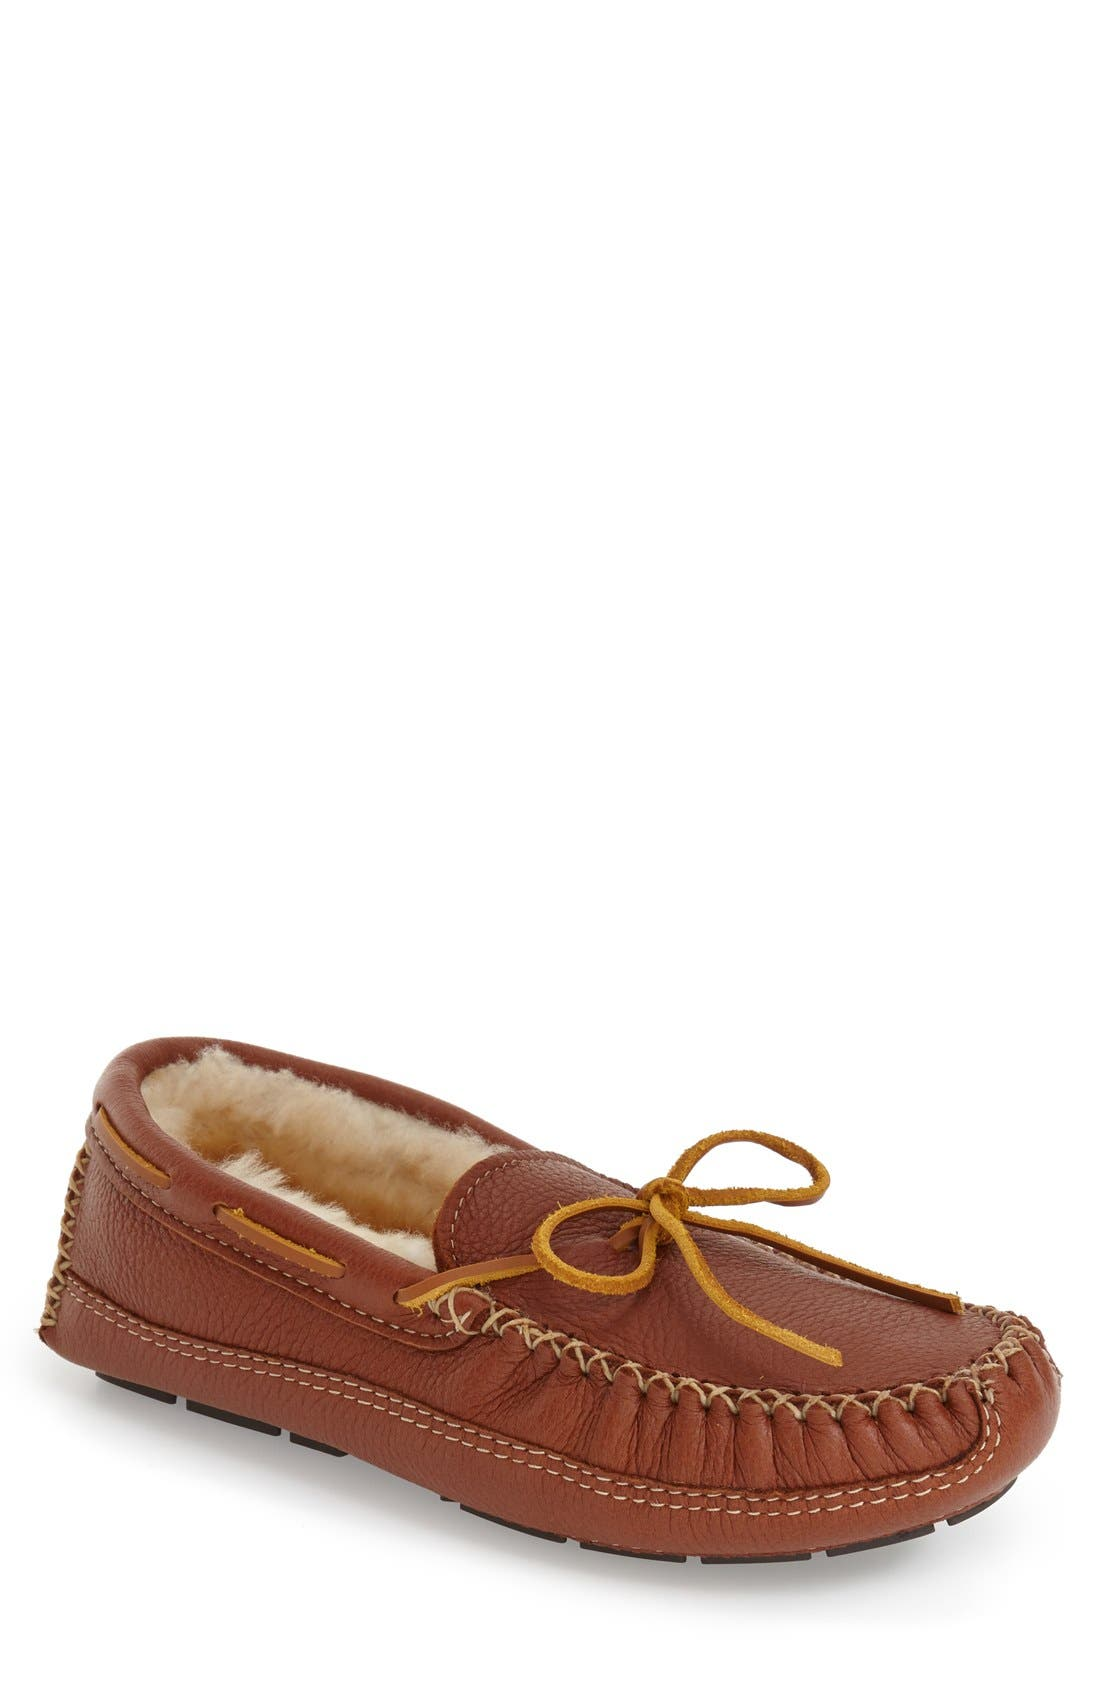 MINNETONKA Genuine Shearling Lined Leather Slipper